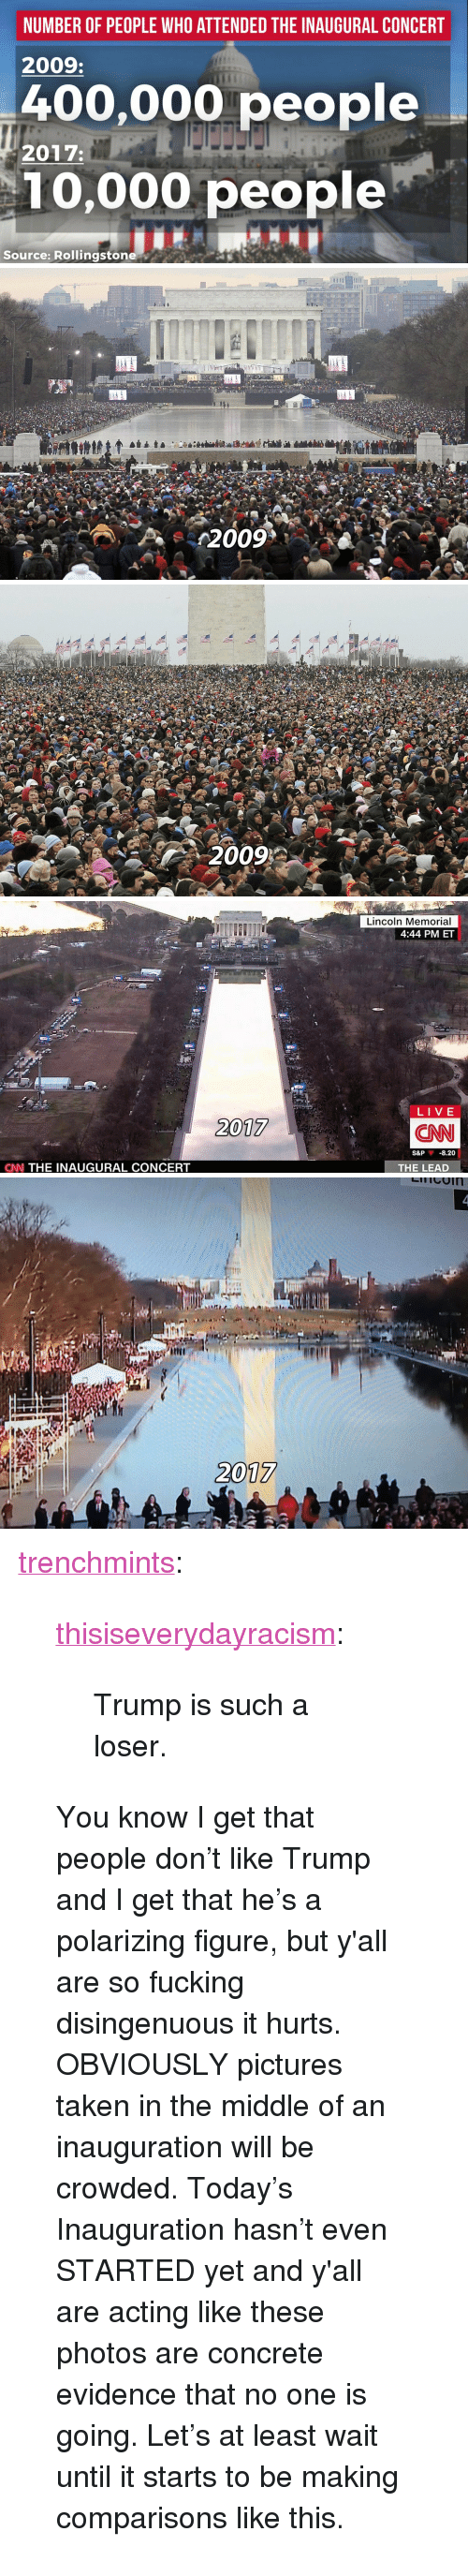 """cnn.com, Fucking, and Taken: NUMBER OF PEOPLE WHO ATTENDED THE INAUGURAL CONCERT  2009:  400,000 people  10,000 people  2017:  Source: Rollingstone   Lincoln Memorial  4:44 PM ET  LIVE  2017  CNN  S&P  -8.20  CNN THE INAUGURAL CONCERT  THE LEAD   2017 <p><a href=""""https://trenchmints.tumblr.com/post/156122840402/trump-is-such-a-loser"""" class=""""tumblr_blog"""">trenchmints</a>:</p>  <blockquote><p><a href=""""https://thisiseverydayracism.tumblr.com/post/156108617461/trump-is-such-a-loser"""" class=""""tumblr_blog"""">thisiseverydayracism</a>:</p>  <blockquote><p>Trump is such a loser.</p></blockquote>  <p>You know I get that people don't like Trump and I get that he's a polarizing figure, but y'all are so fucking disingenuous it hurts.</p><p>OBVIOUSLY pictures taken in the middle of an inauguration will be crowded.  Today's Inauguration hasn't even STARTED yet and y'all are acting like these photos are concrete evidence that no one is going.  Let's at least wait until it starts to be making comparisons like this.</p></blockquote>"""